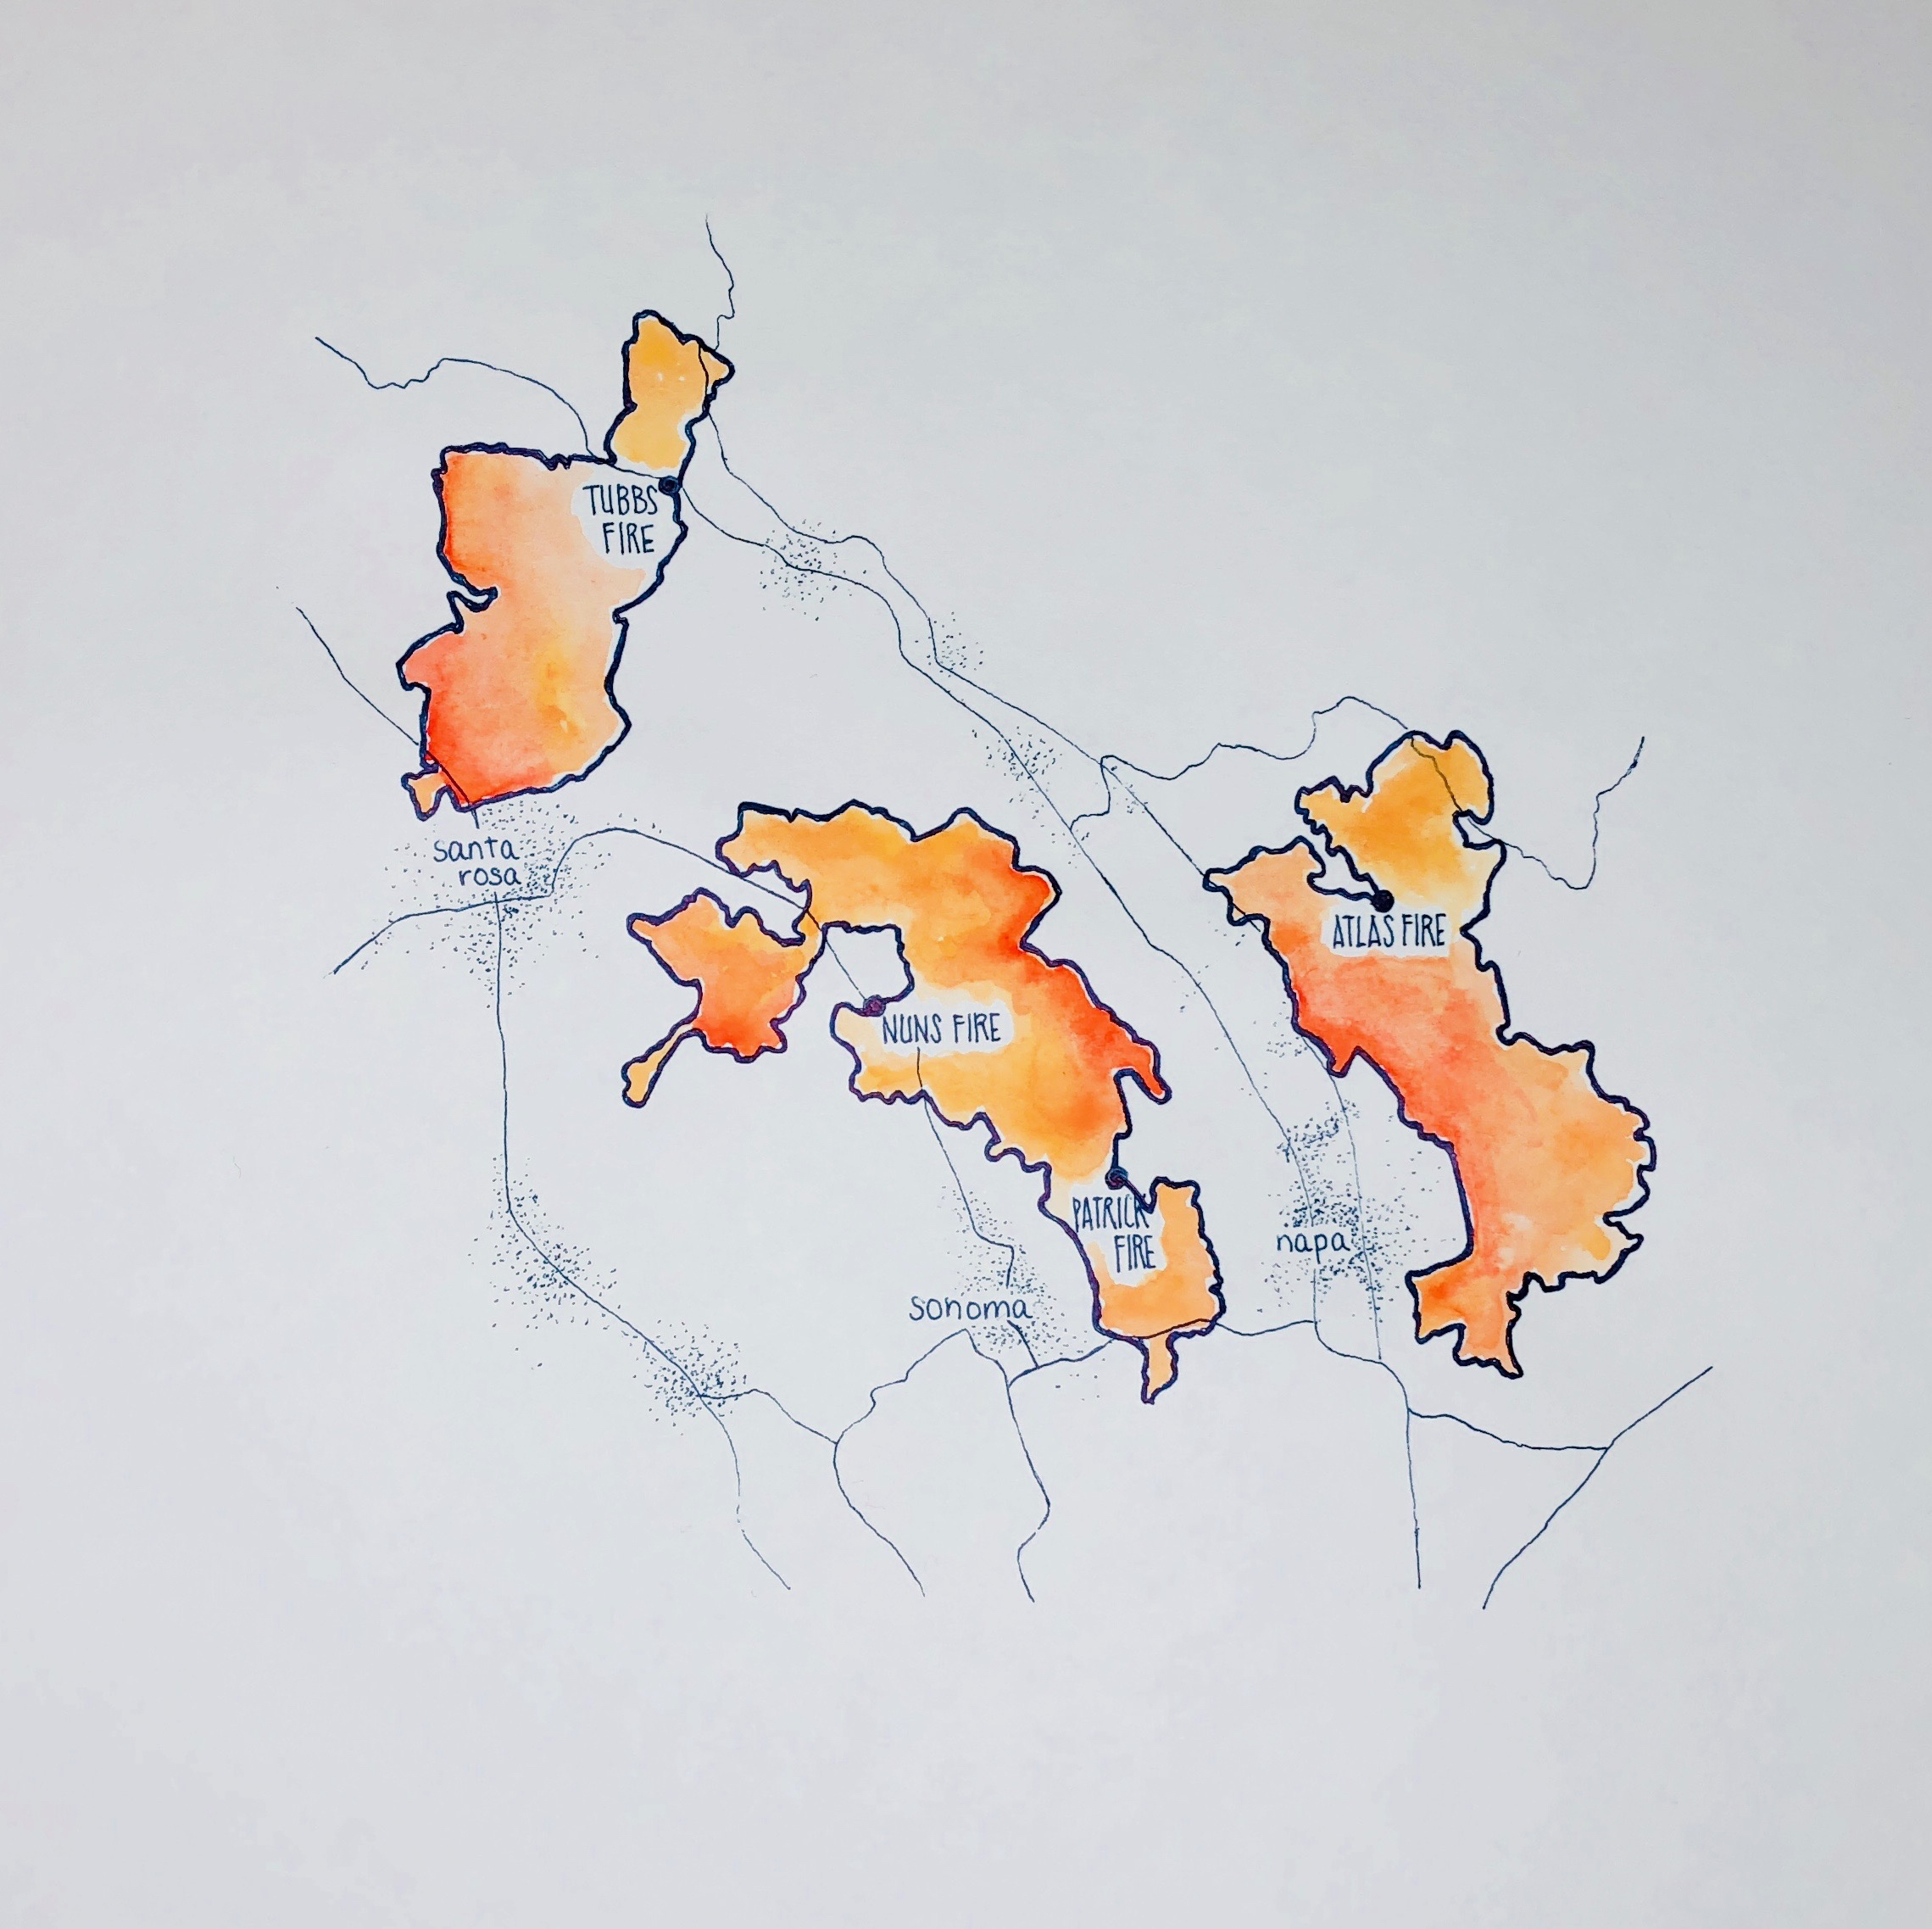 2017 Napa Fires. Map of the extent of fires and origin of each fire. It's been one year since the fires that devasted Northern California. Over 145,000 acres burned in the Atlas, Tubbs, and Nuns fire (shown here). Over 40 lives lost and thousands lost their homes. Data from  San Francisco Chronicle .